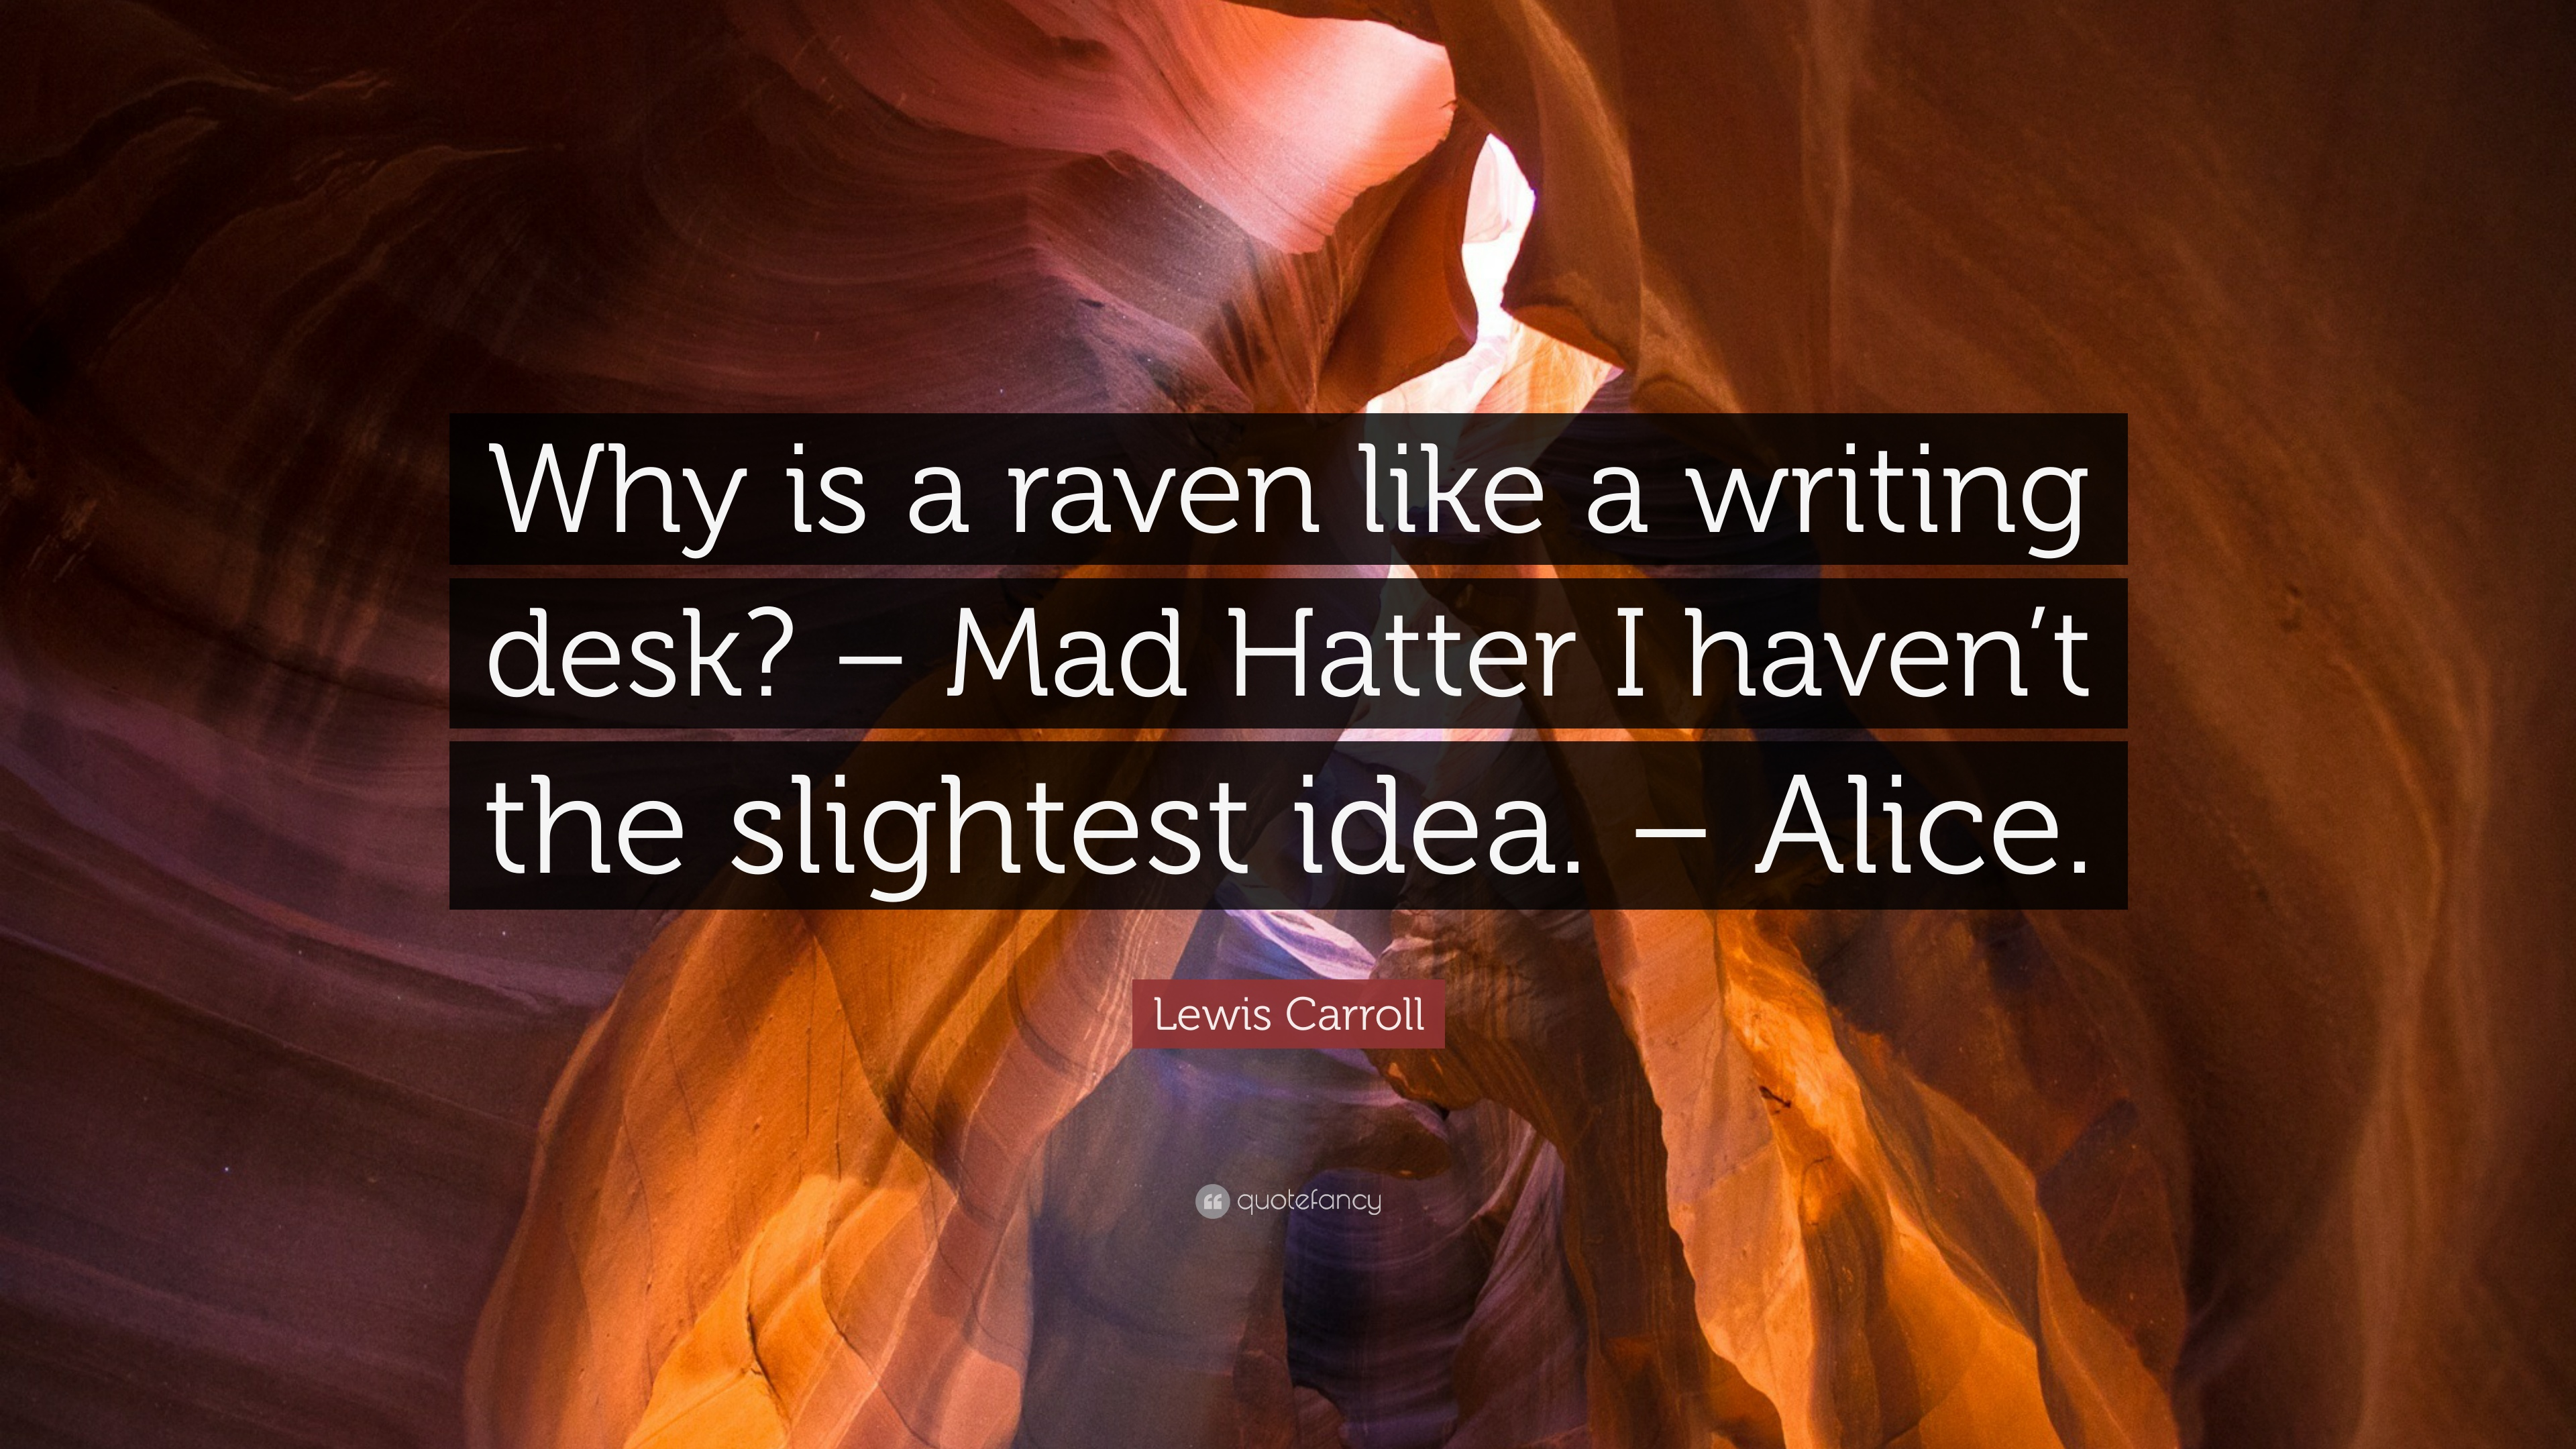 Raven like a writing desk quote